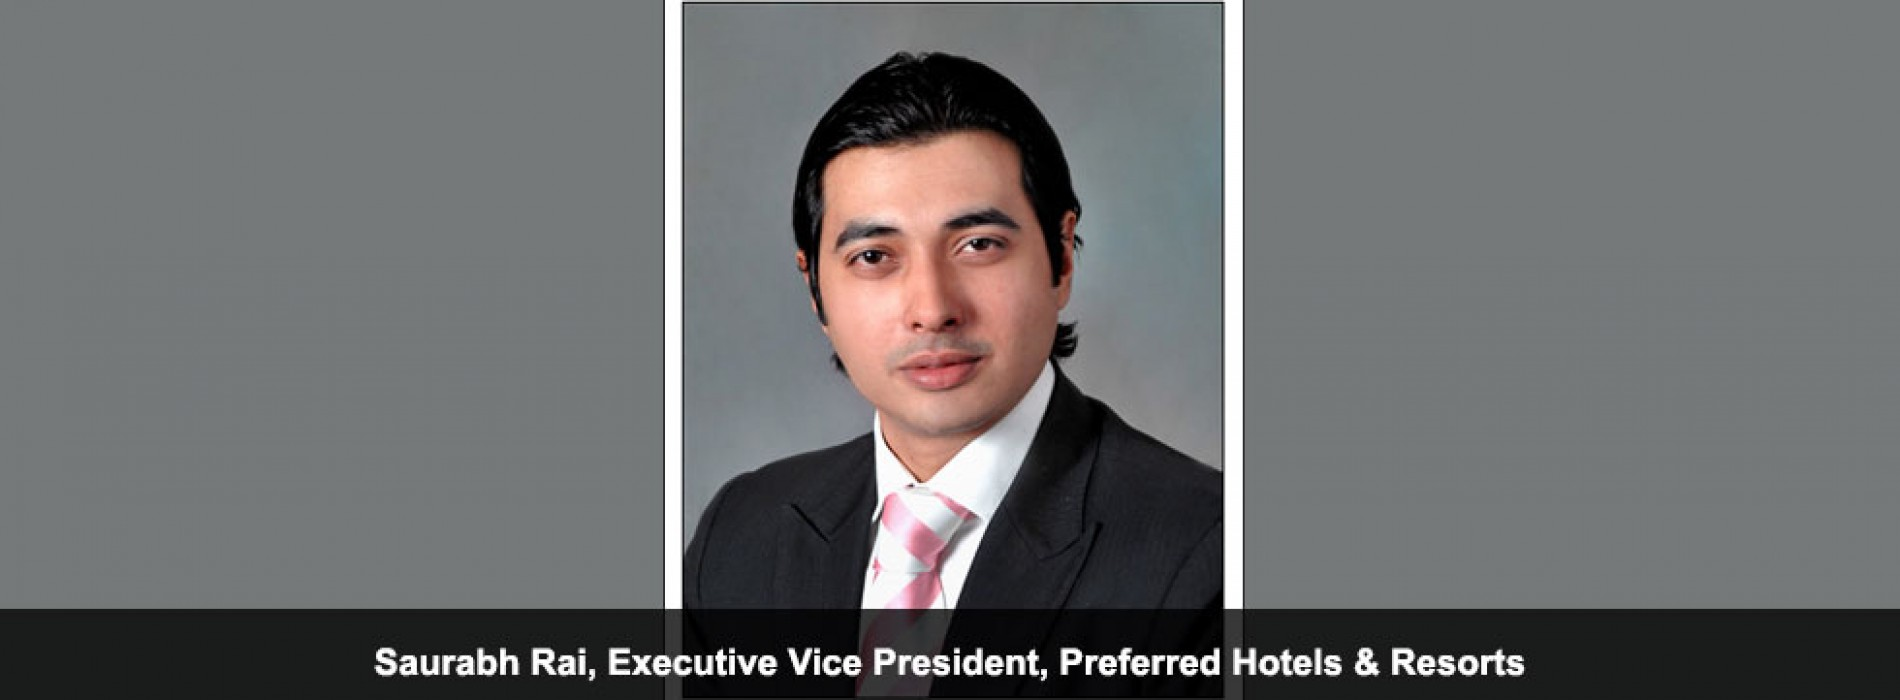 Indian government has shown good intent in endorsing the travel and hotel sector, says Saurabh Rai